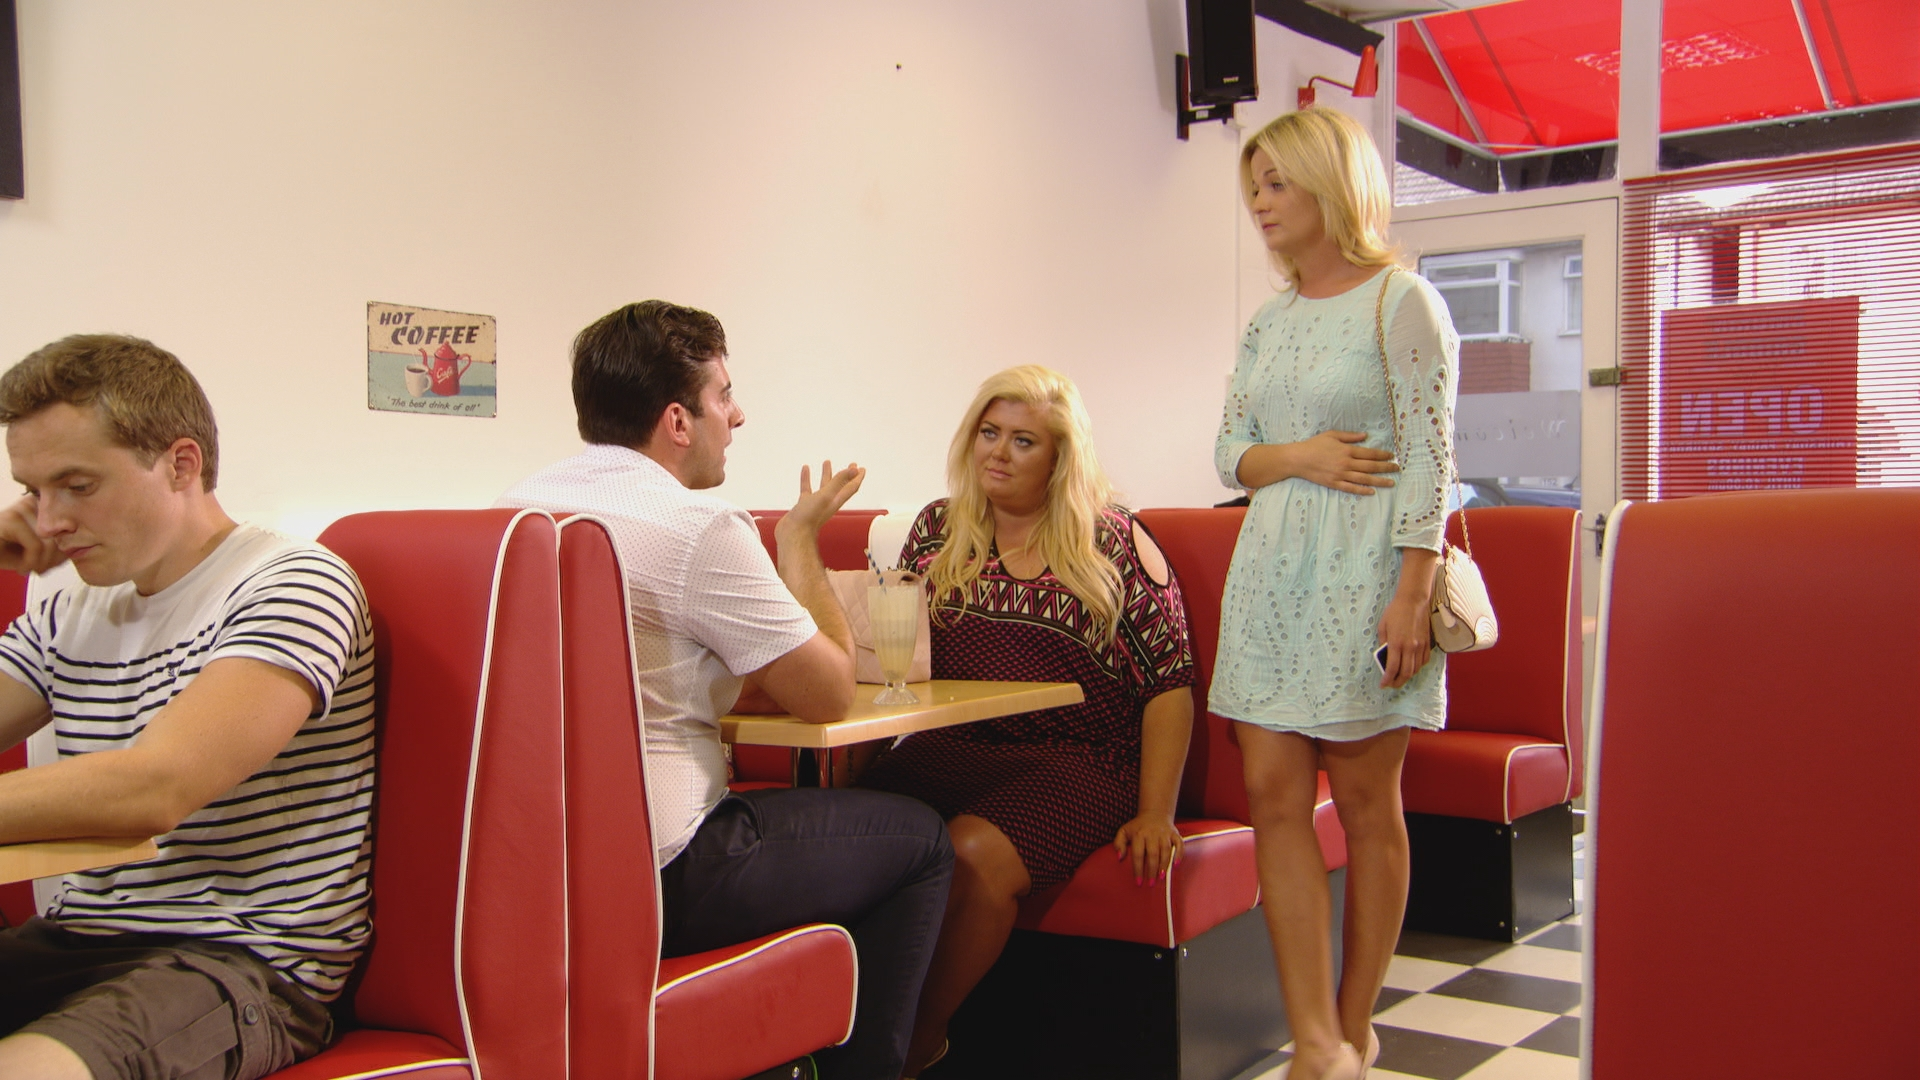 TOWIE 2014: Lydia Bright's sister Georgia puts James 'Arg' Argent in his place while Lauren Pope takes on Danielle Armstrong